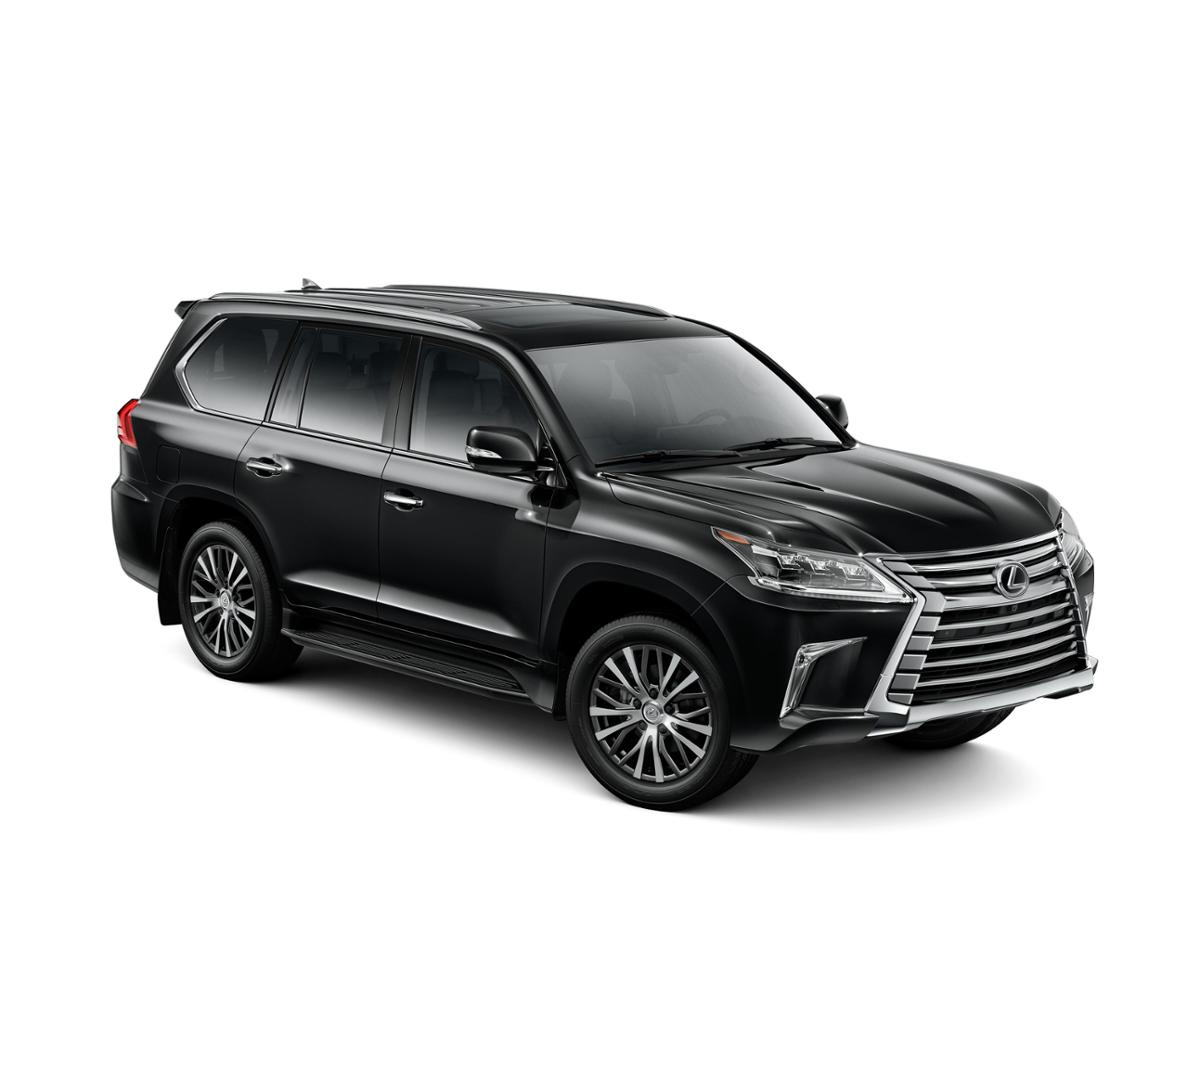 2017 Lexus LX 570 Vehicle Photo in El Monte, CA 91731